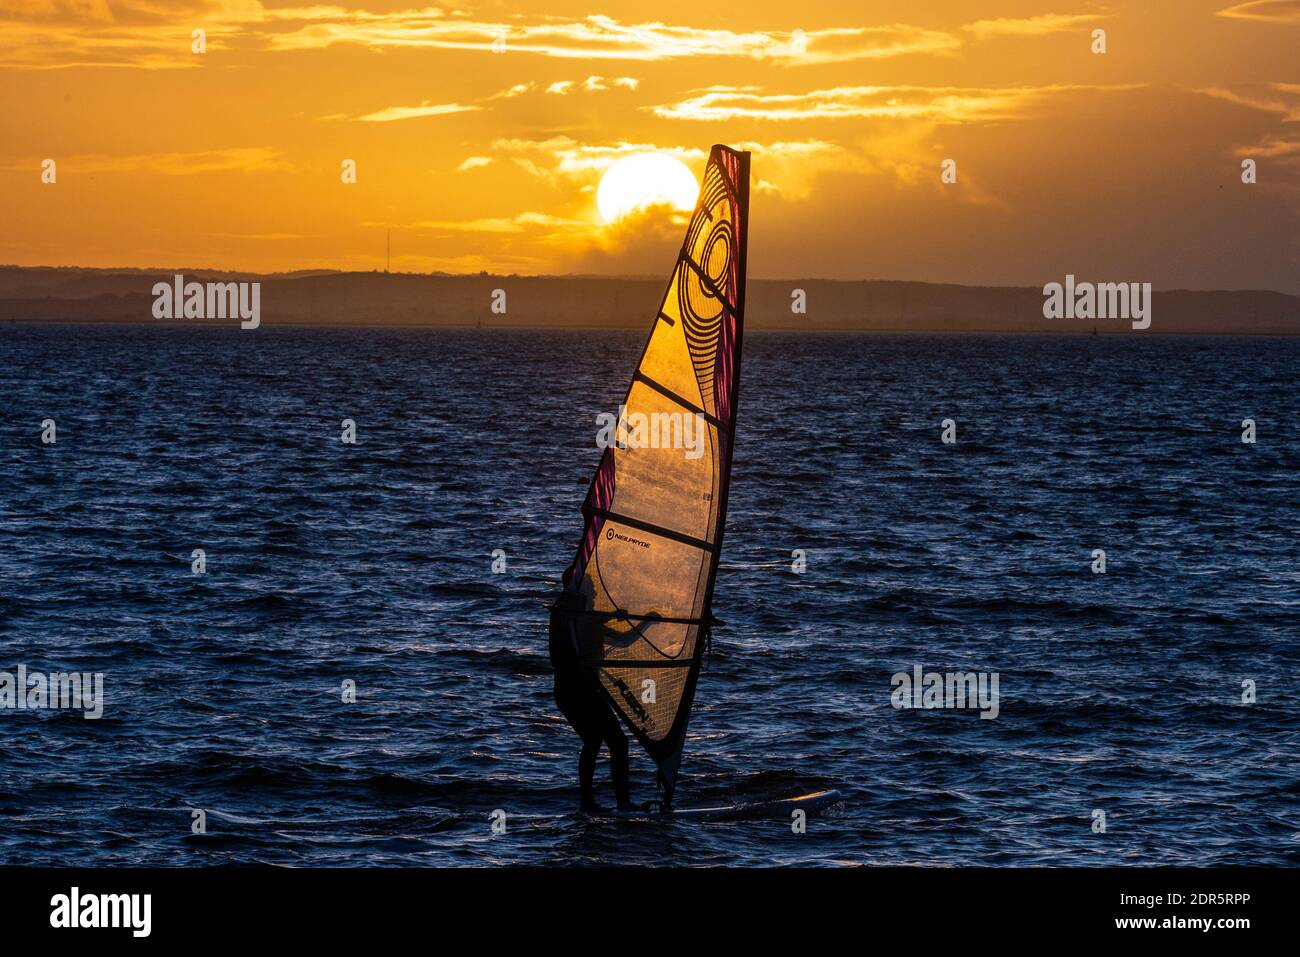 chalkwell-beach-southend-on-sea-essex-uk-20th-dec-2020-the-first-day-of-covid-alert-tier-4-in-southend-on-sea-has-ended-bright-but-cold-with-the-sun-setting-behind-a-windsurfer-out-on-the-thames-estuary-2DR5RPP.jpg